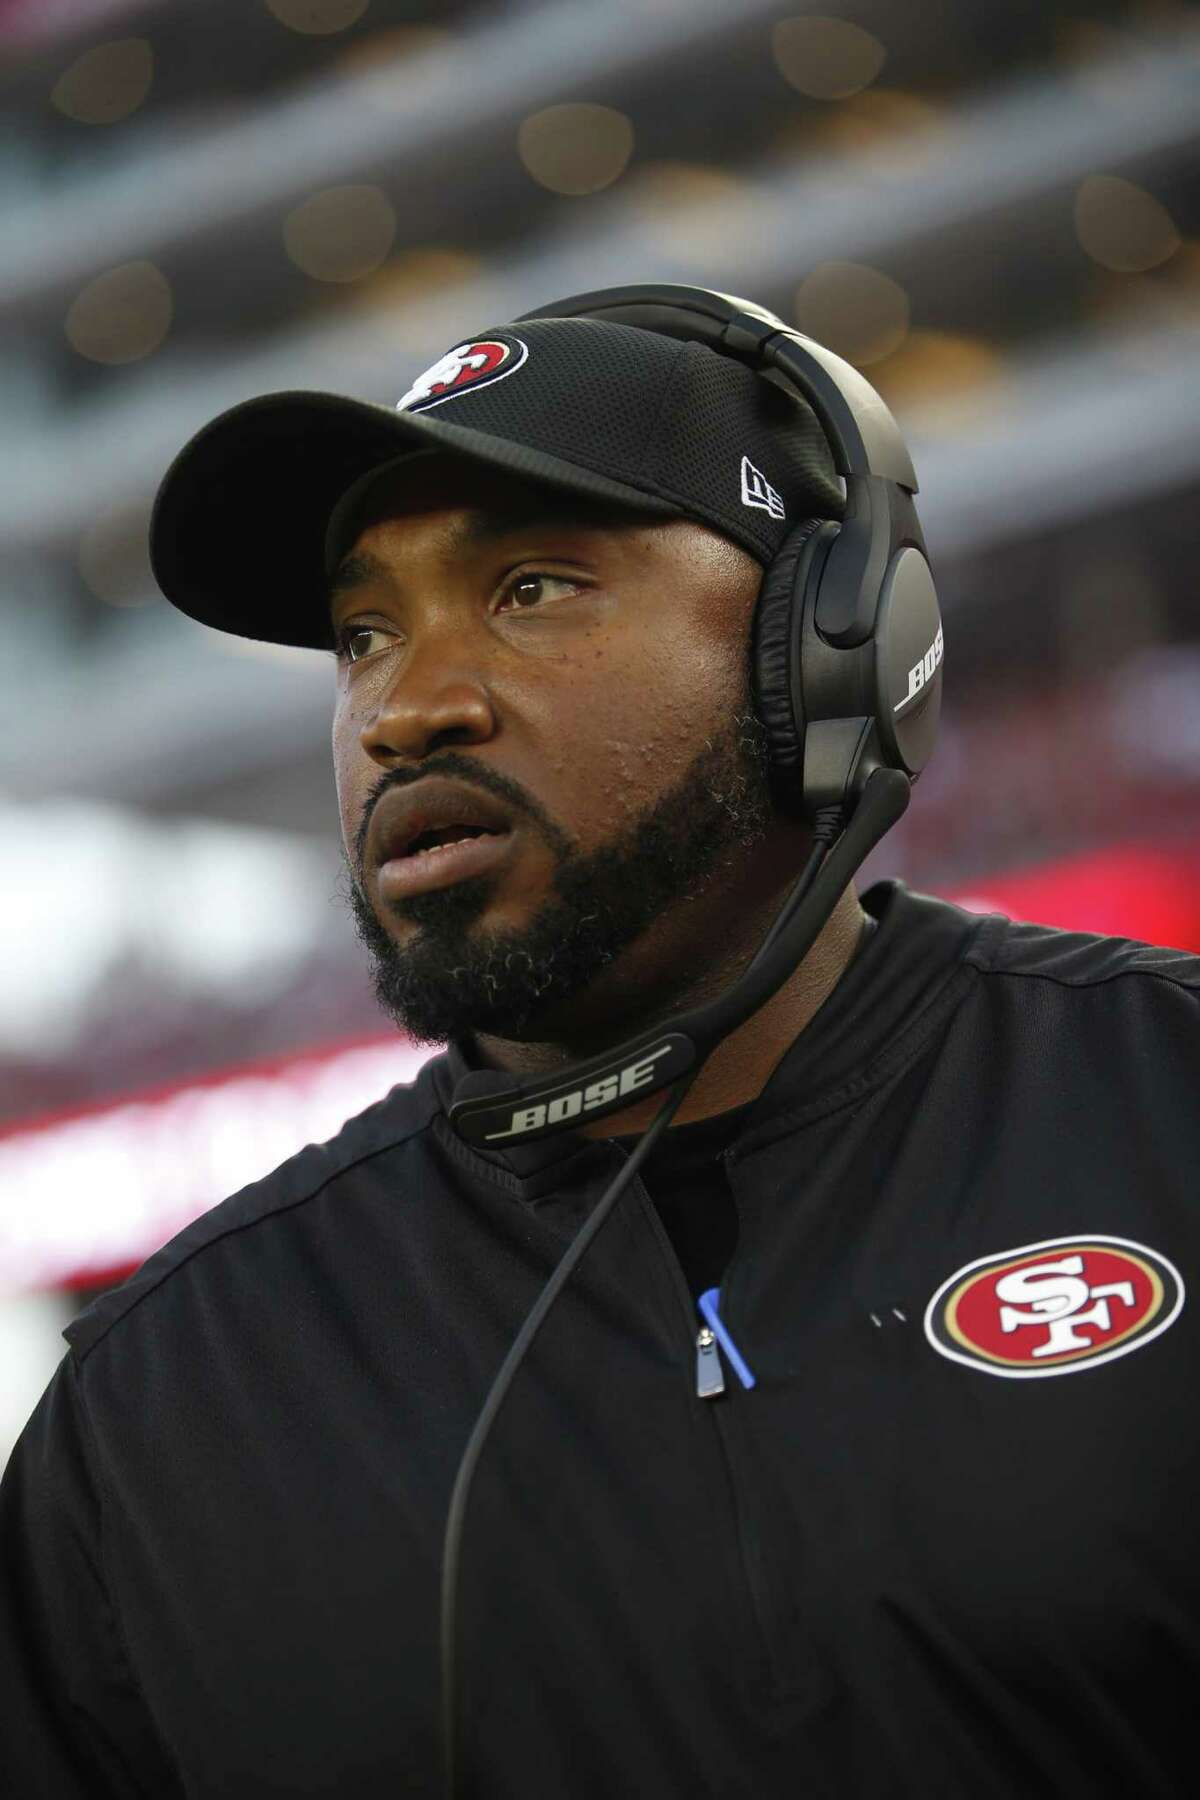 SANTA CLARA, CA - AUGUST 31: Special Teams Coordinator Richard Hightower of the San Francisco 49ers stands on the sideline prior to the game against the Los Angeles Chargers at Levi's Stadium on August 31, 2017 in Santa Clara, California. The 49ers defeated the Chargers 23-13. (Photo by Michael Zagaris/San Francisco 49ers/Getty Images)